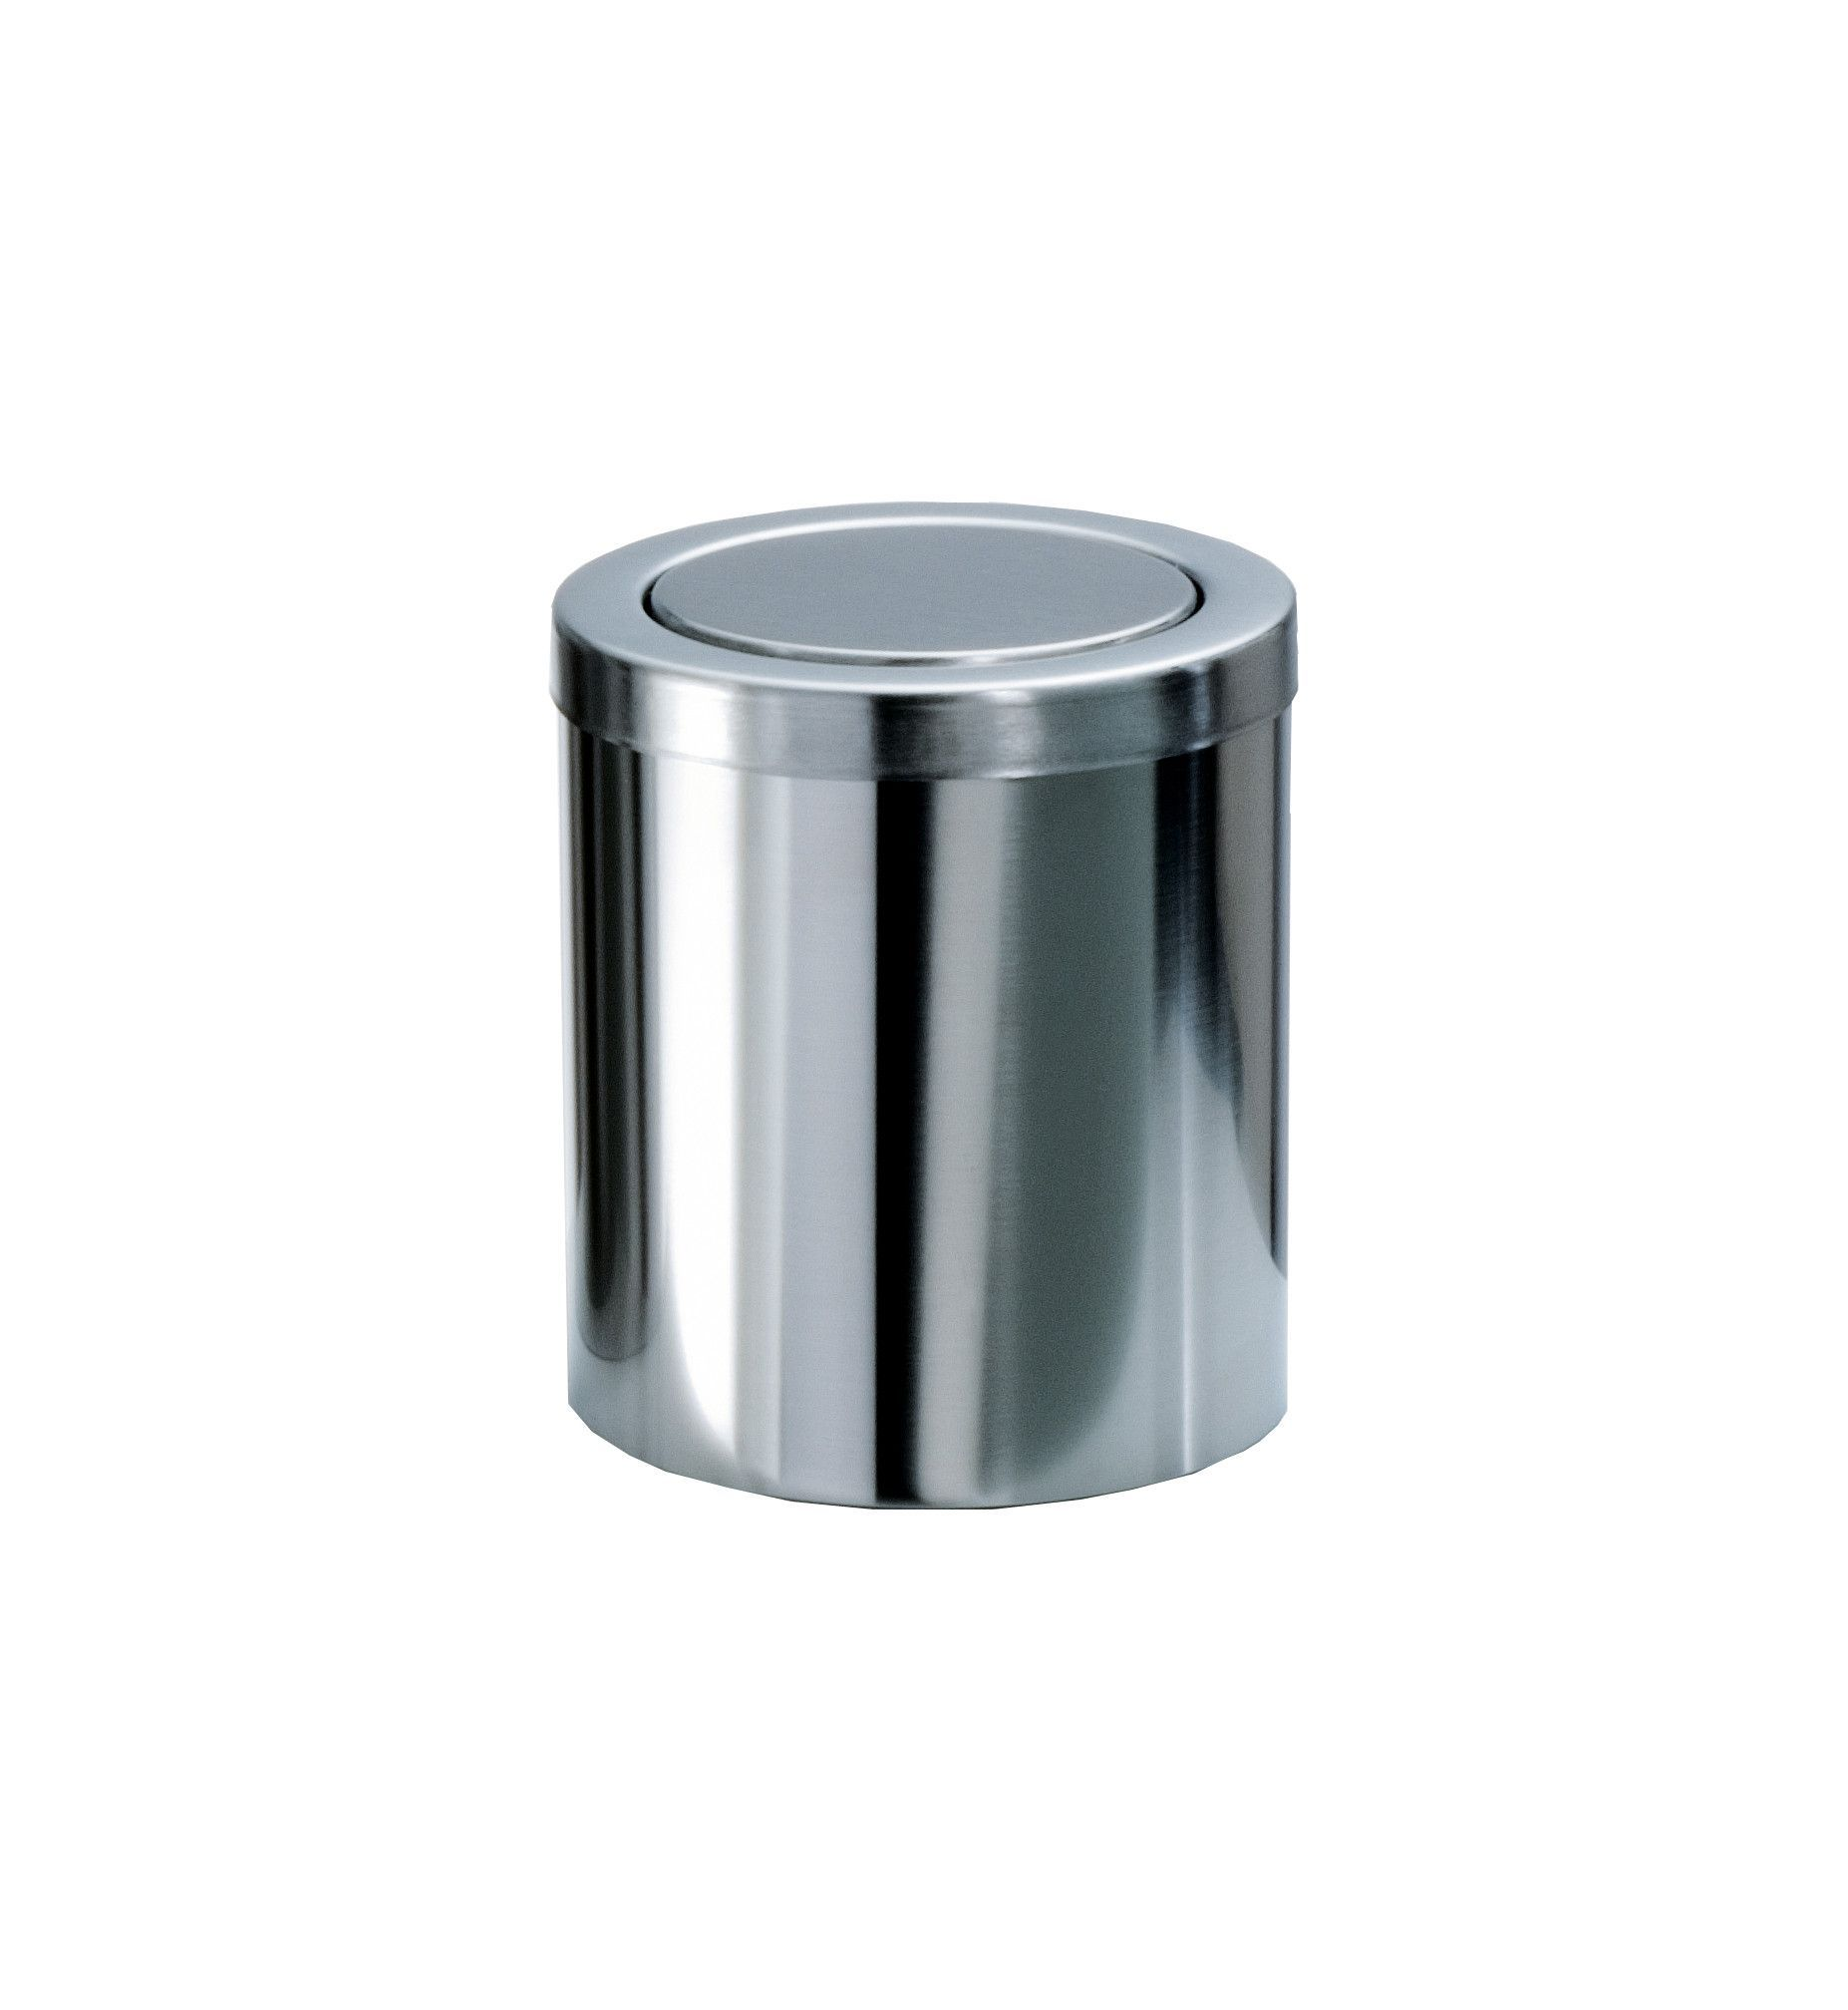 DWBA Round Extra Small Coutertop Wastebasket Trash Can W  Swing Lid  Steel  Chrome. DWBA Round Extra Small Coutertop Wastebasket Trash Can W  Swing